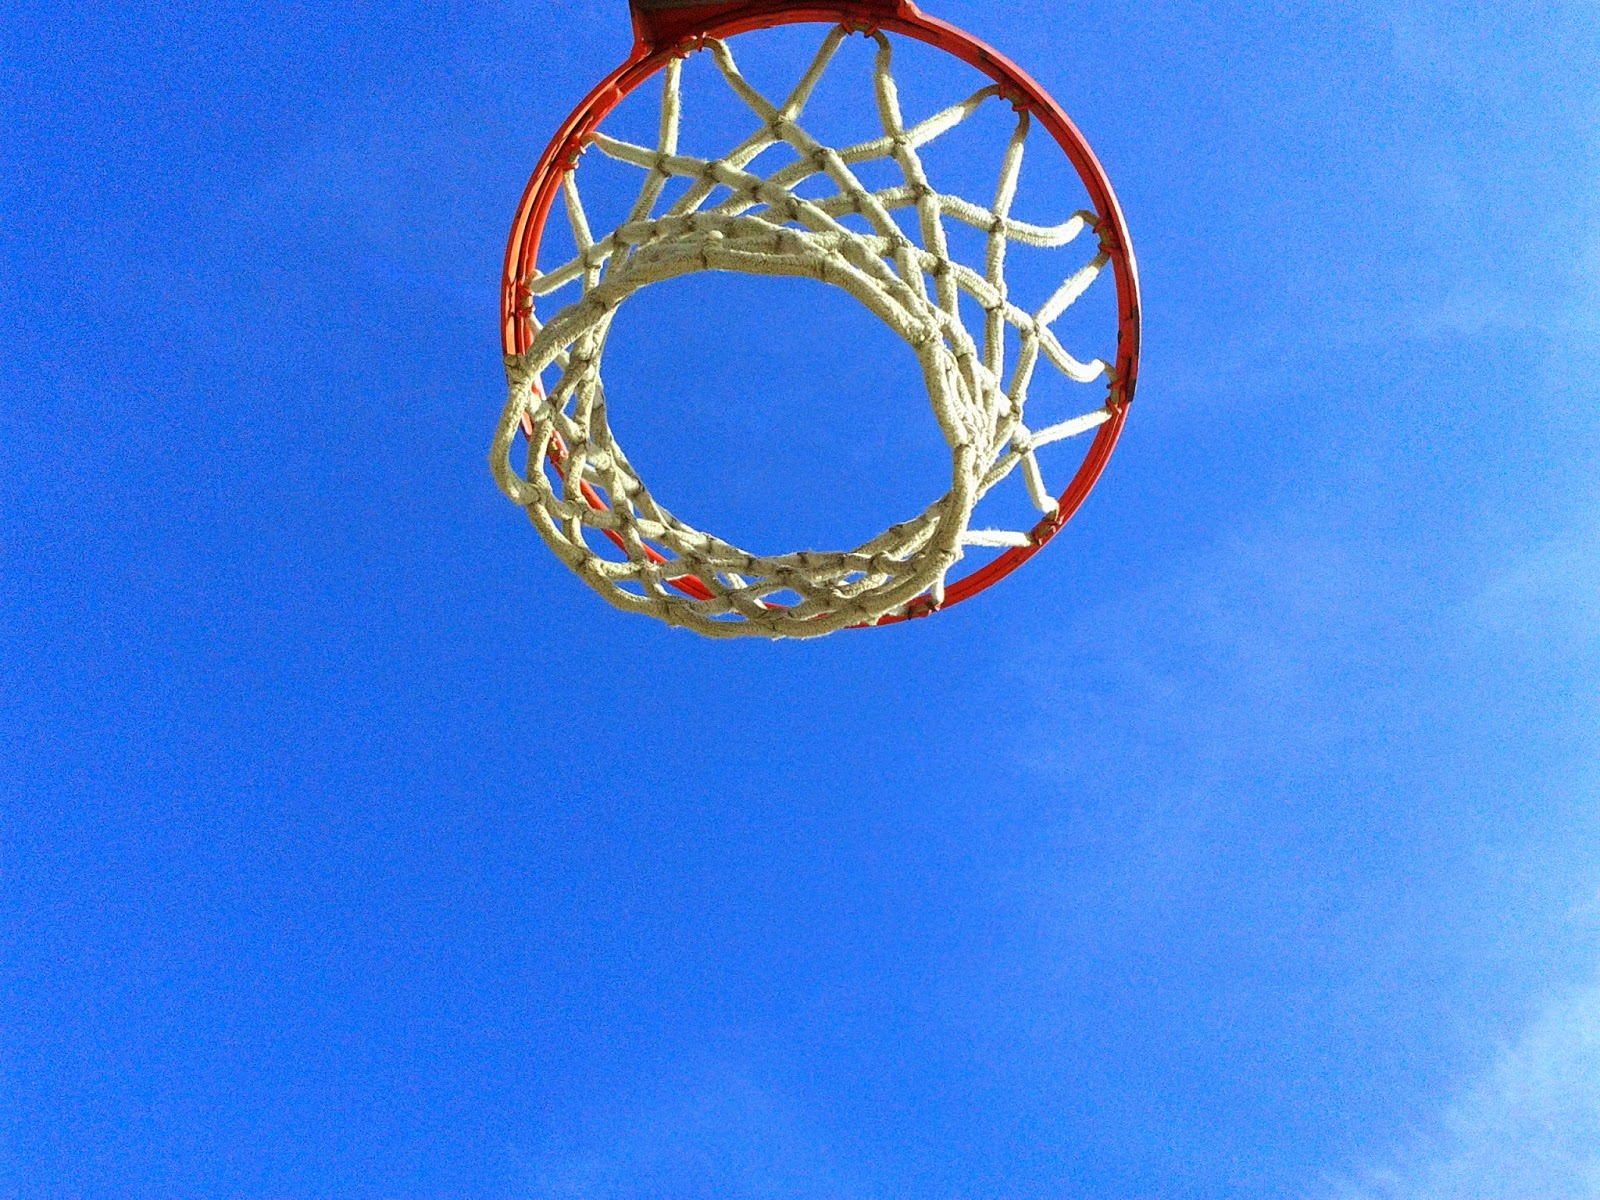 Stock Photo: Basketball rim / net with blue sky in background